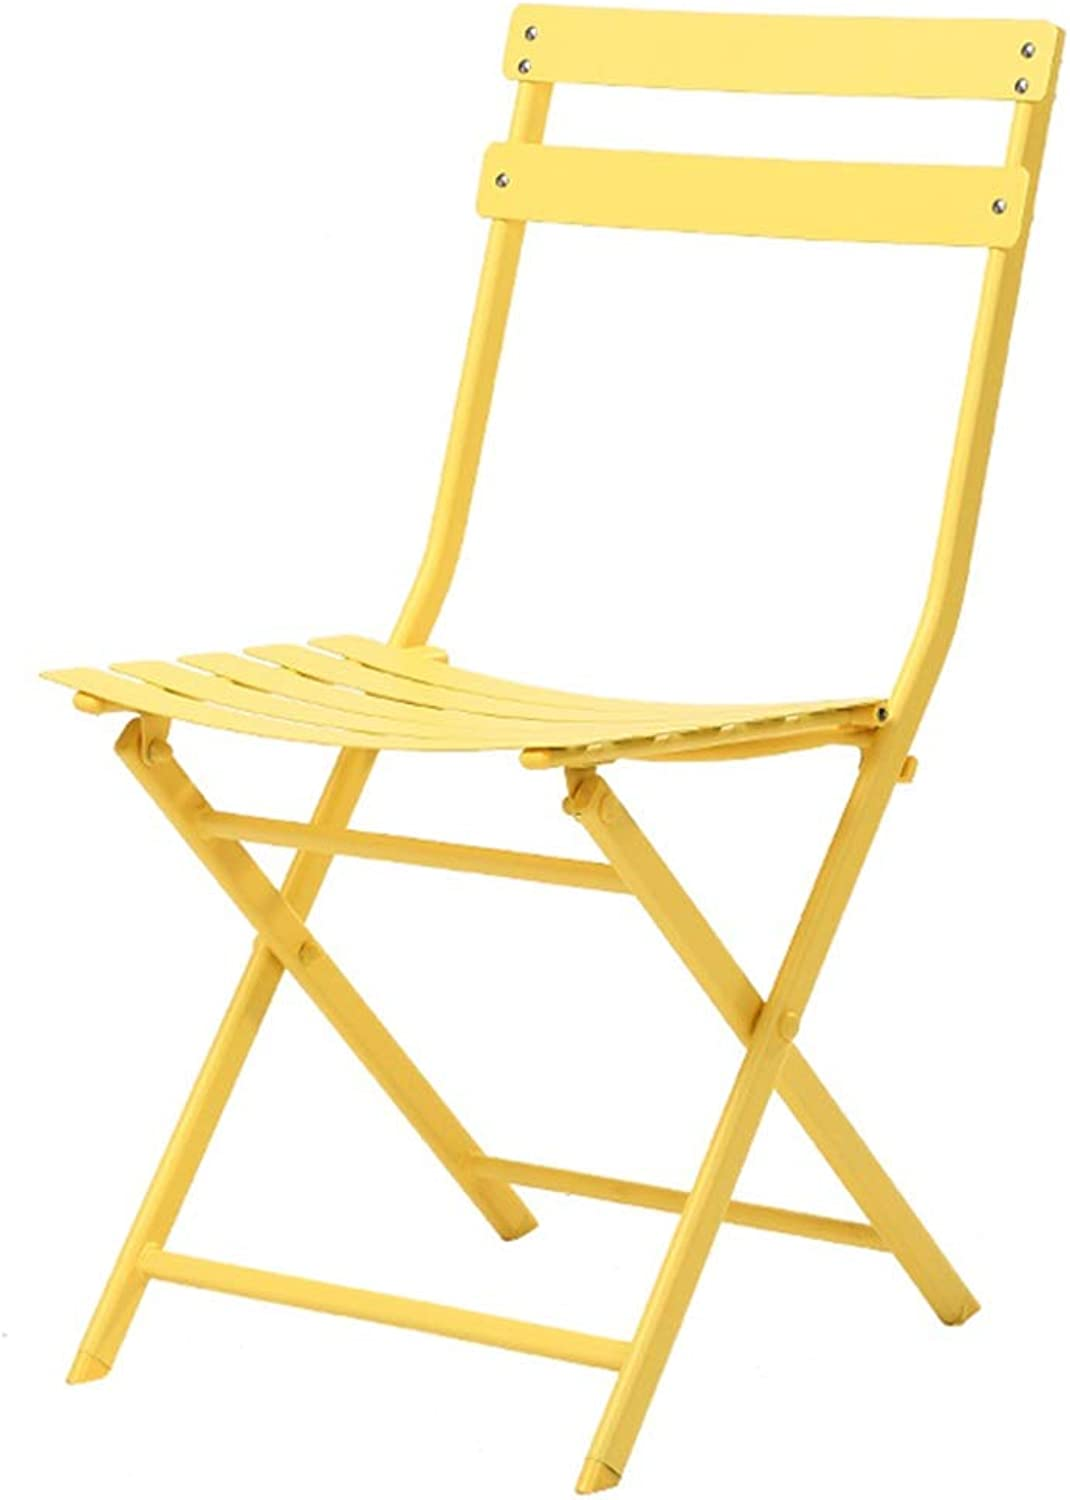 Fashion Simple Yellow Wrought Iron Folding Dining Chair Living Room Balcony Leisure Chair